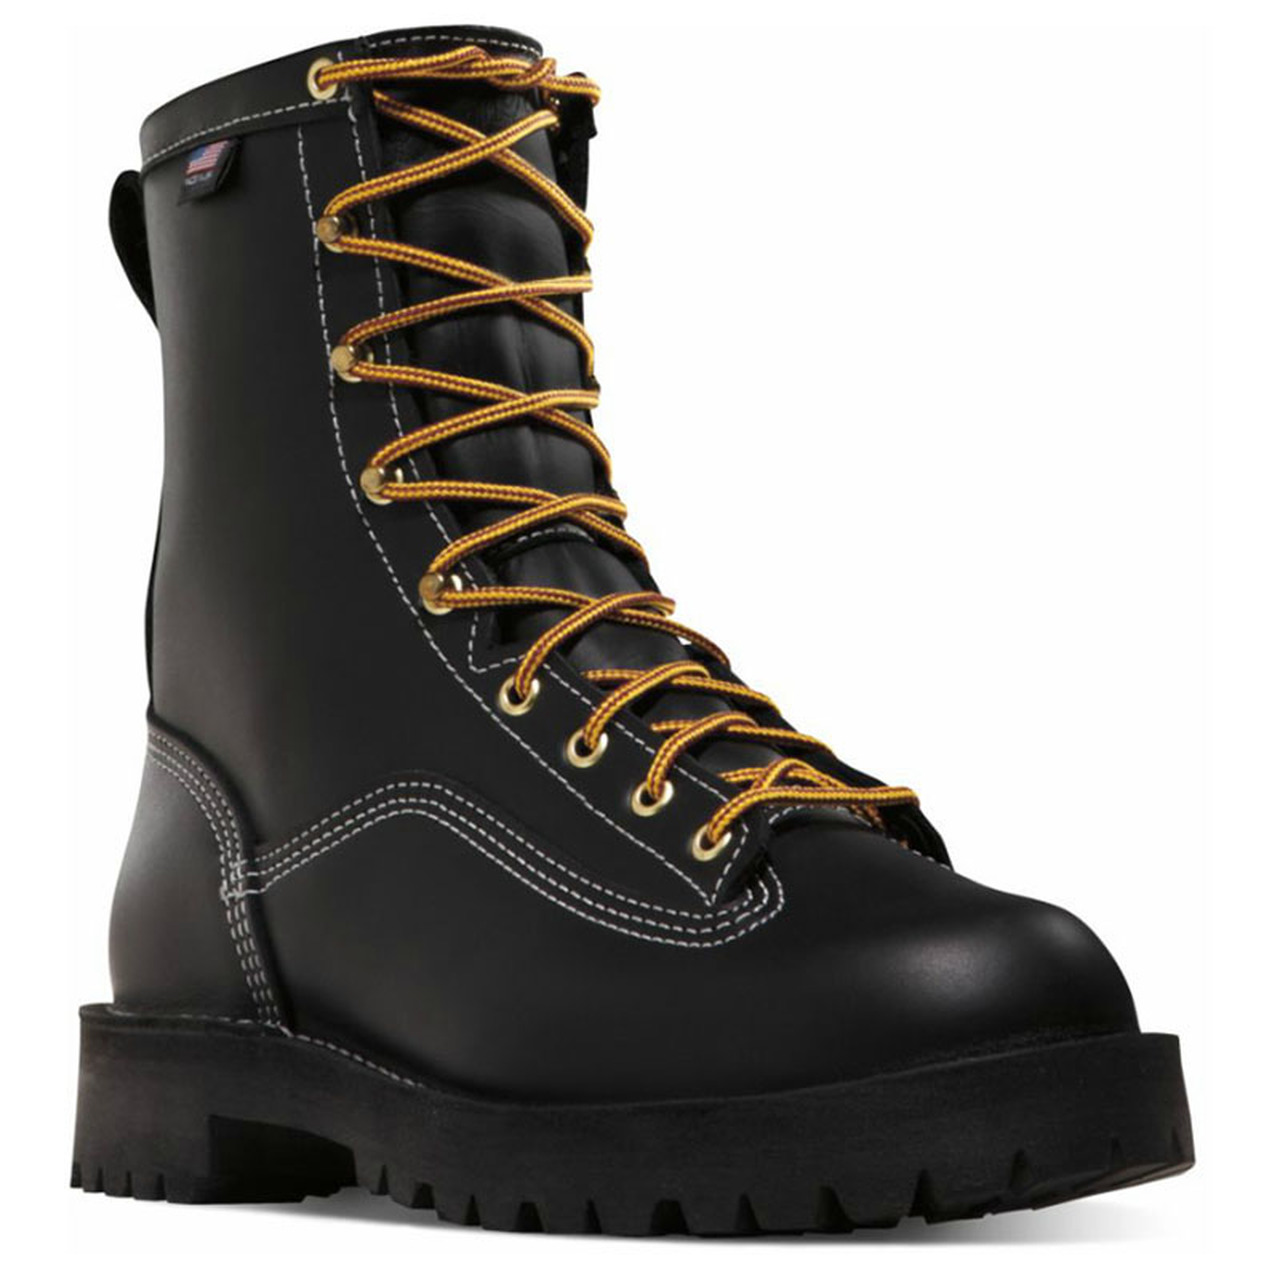 Danner Super Rain Forest Boots are USA Made Berry Compliant and have an extra layer of leather on their toes and Insteps